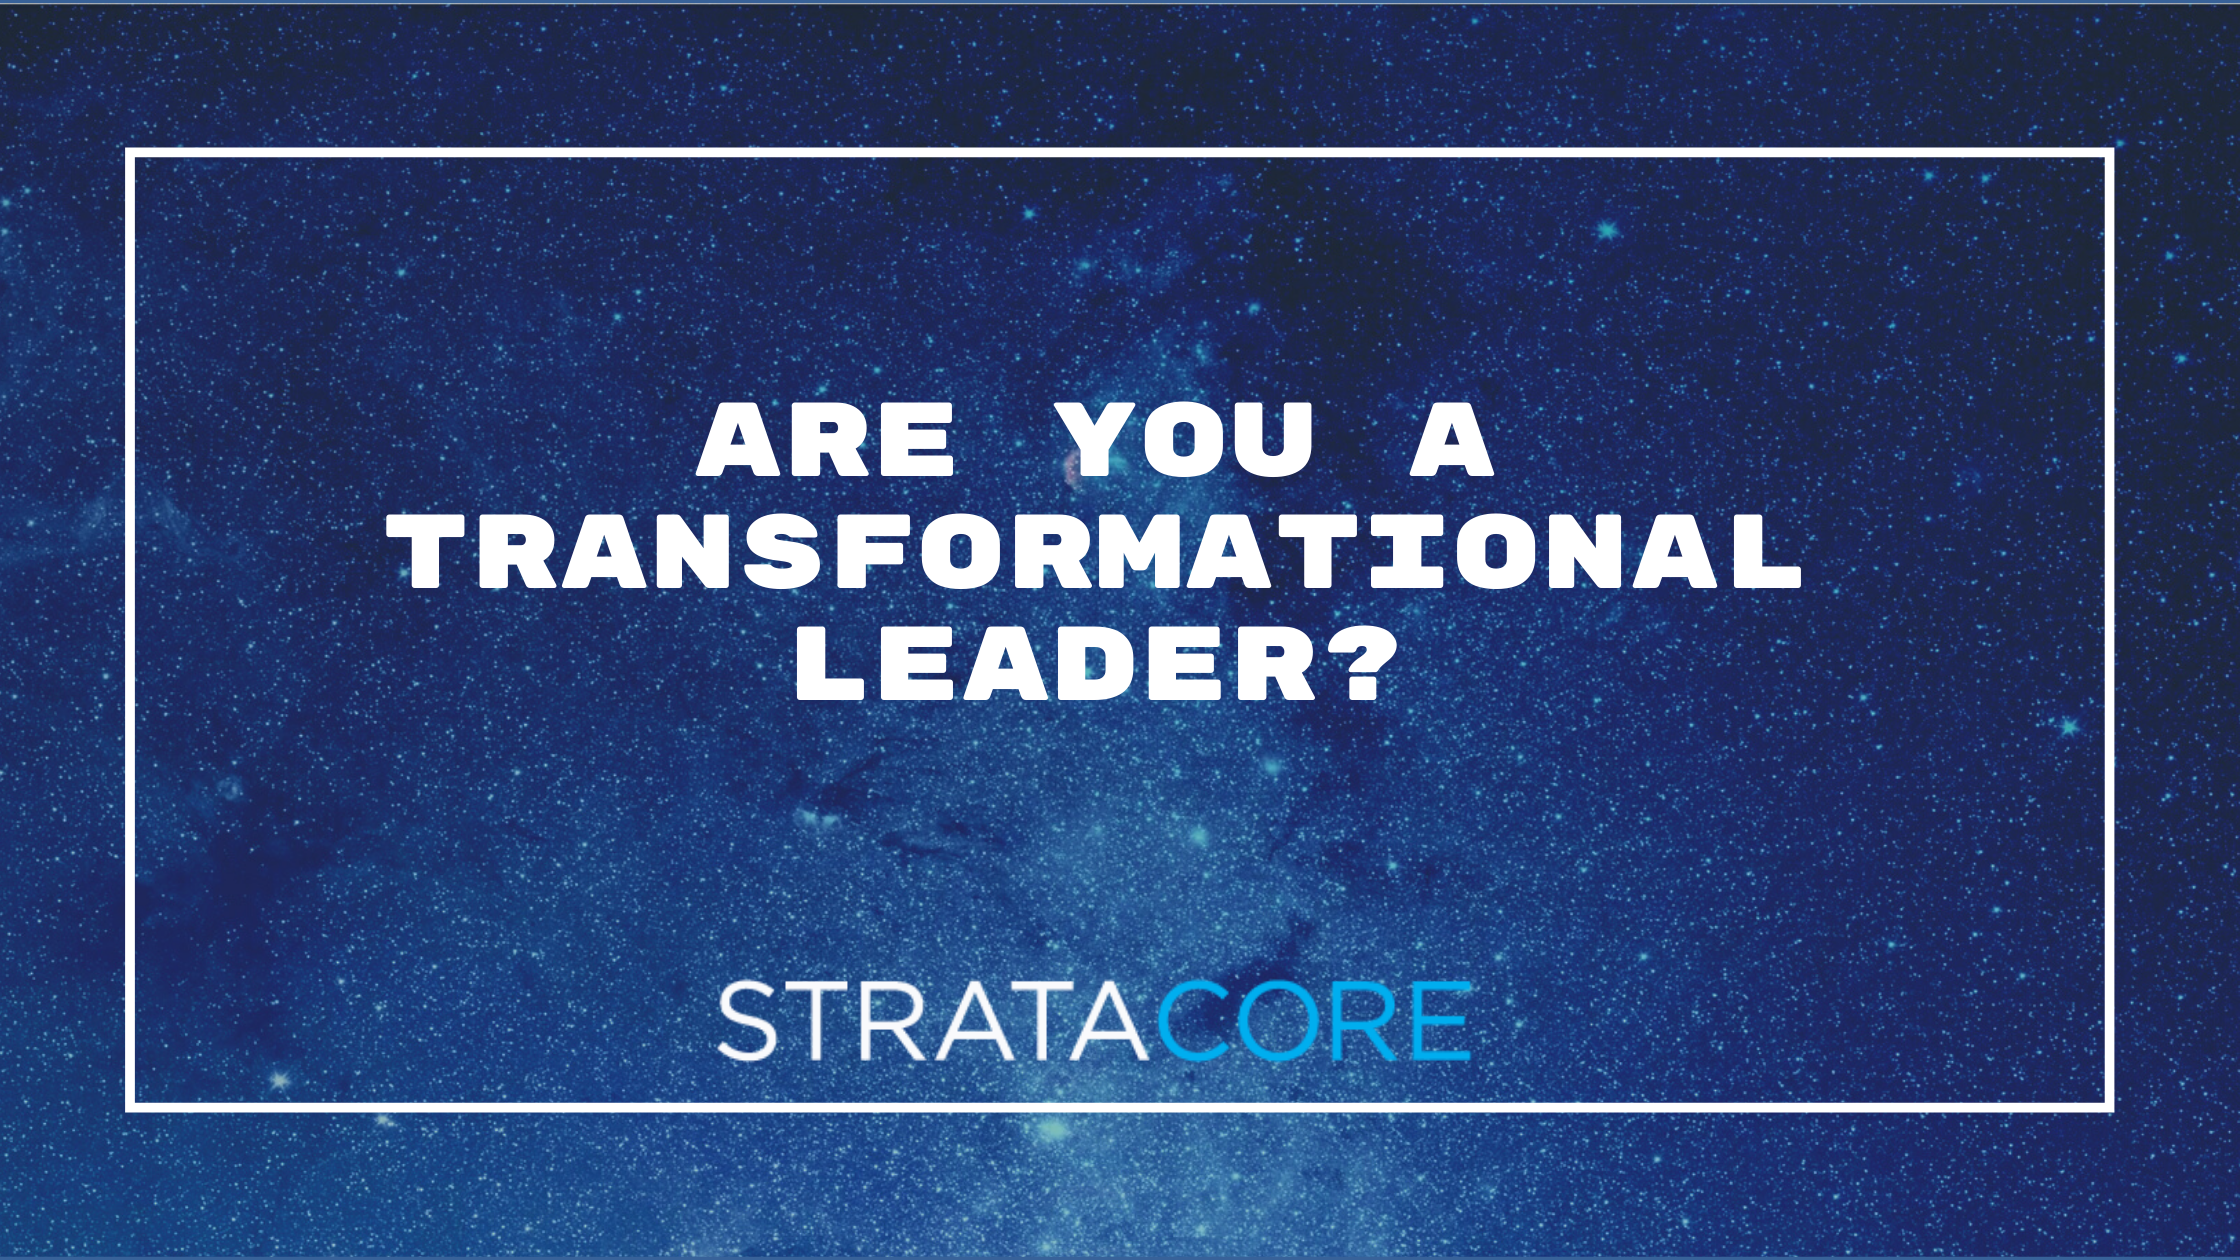 Are you a transformational leader